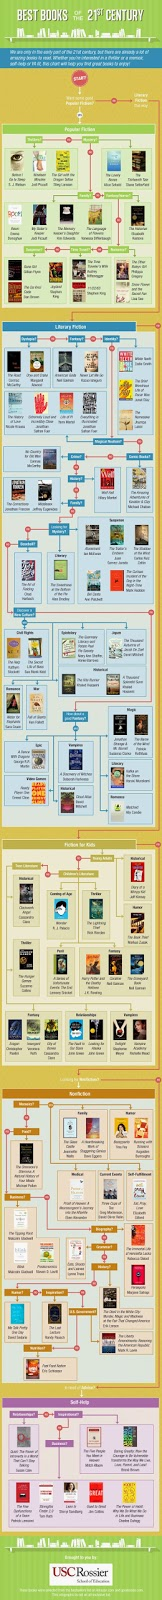 The Top Books of the 21st Century